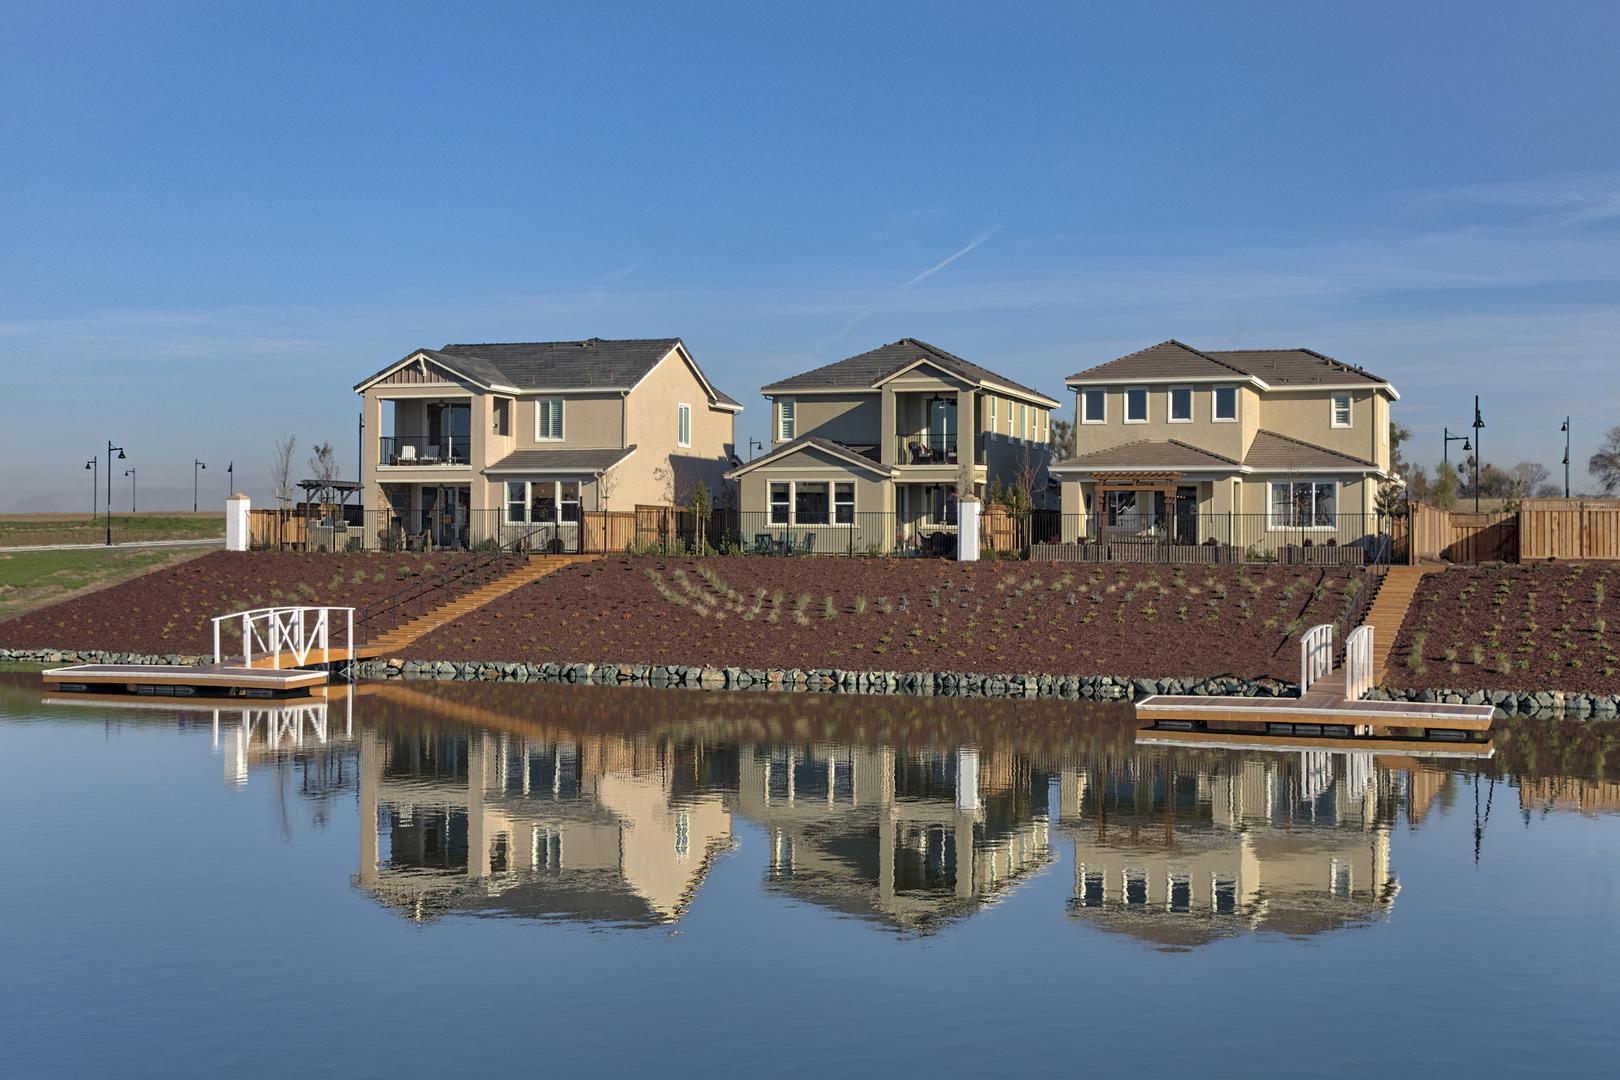 Architectural Innovation At River Islands: Lakeside and Beacon Bay By Kiper Homes